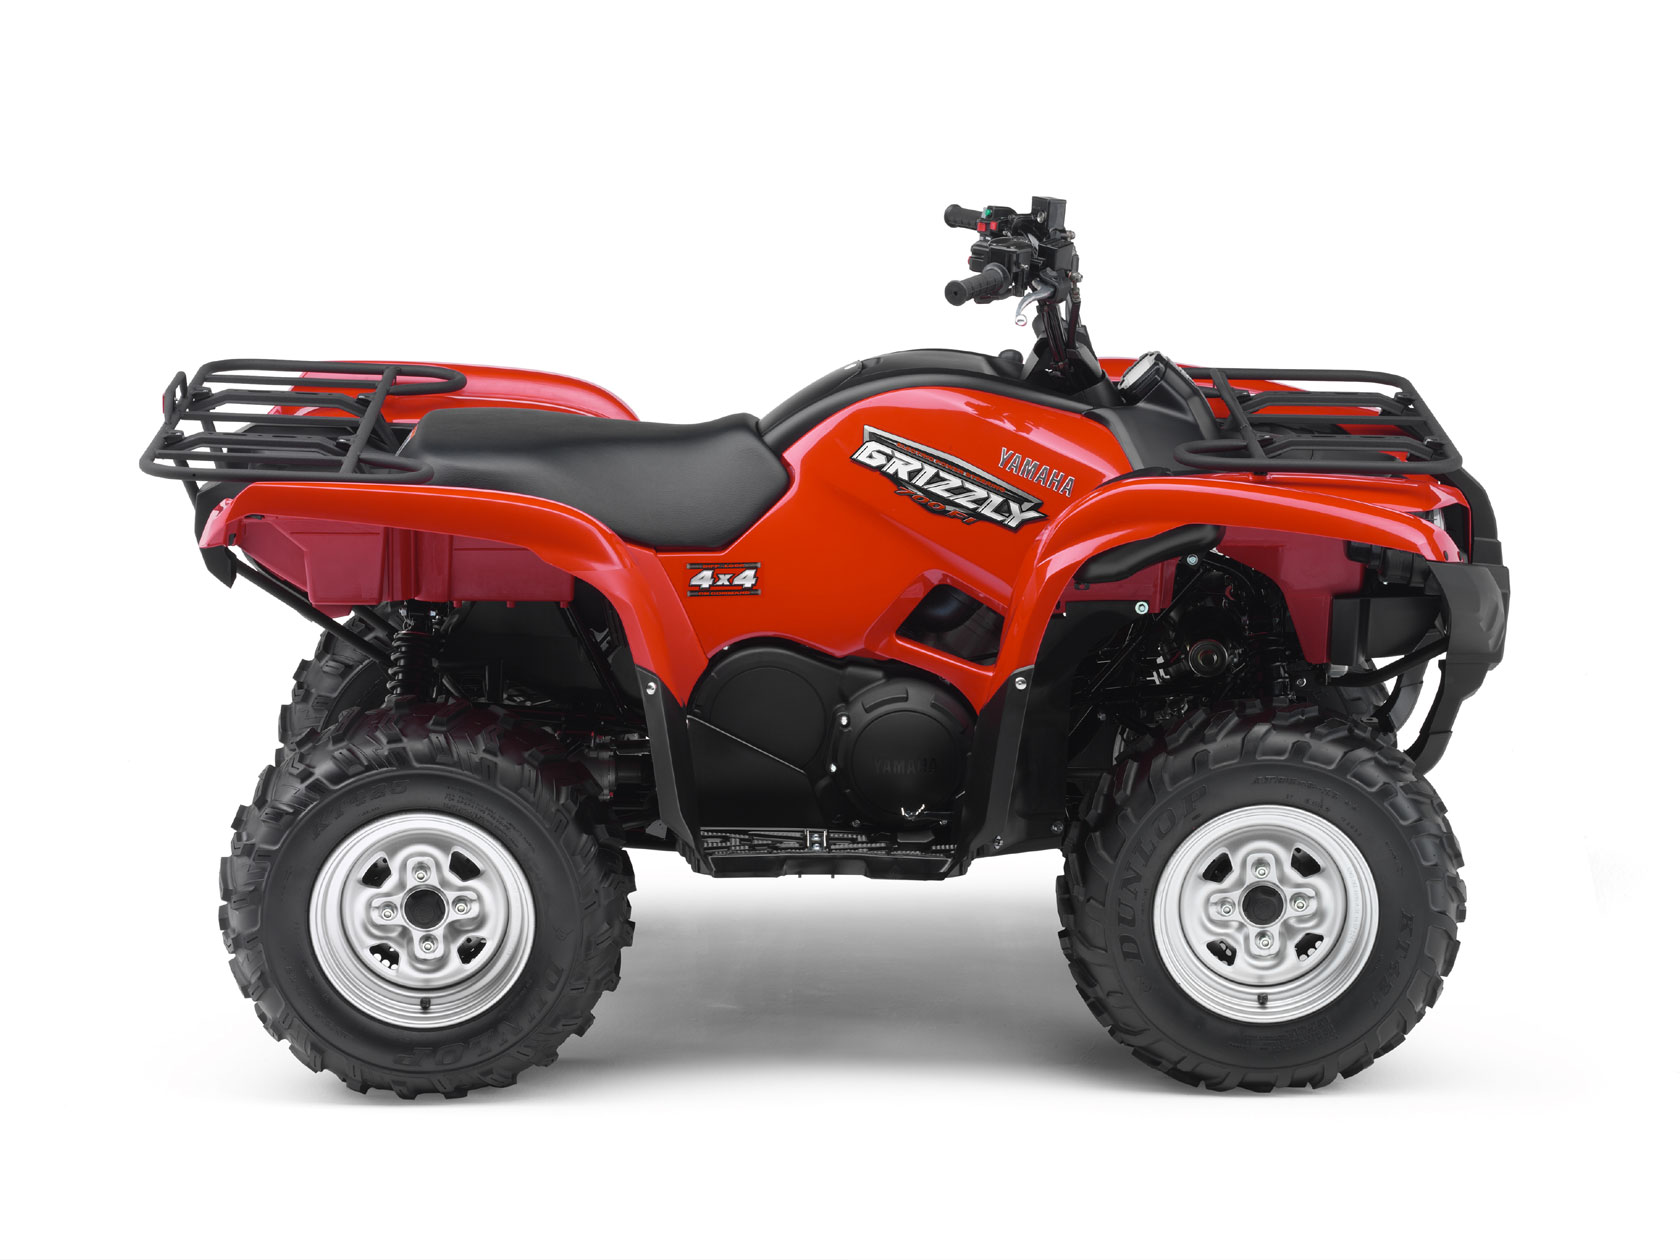 Yamaha grizzly 700 fi eps specs 2008 2009 autoevolution for 2018 yamaha grizzly 700 specs